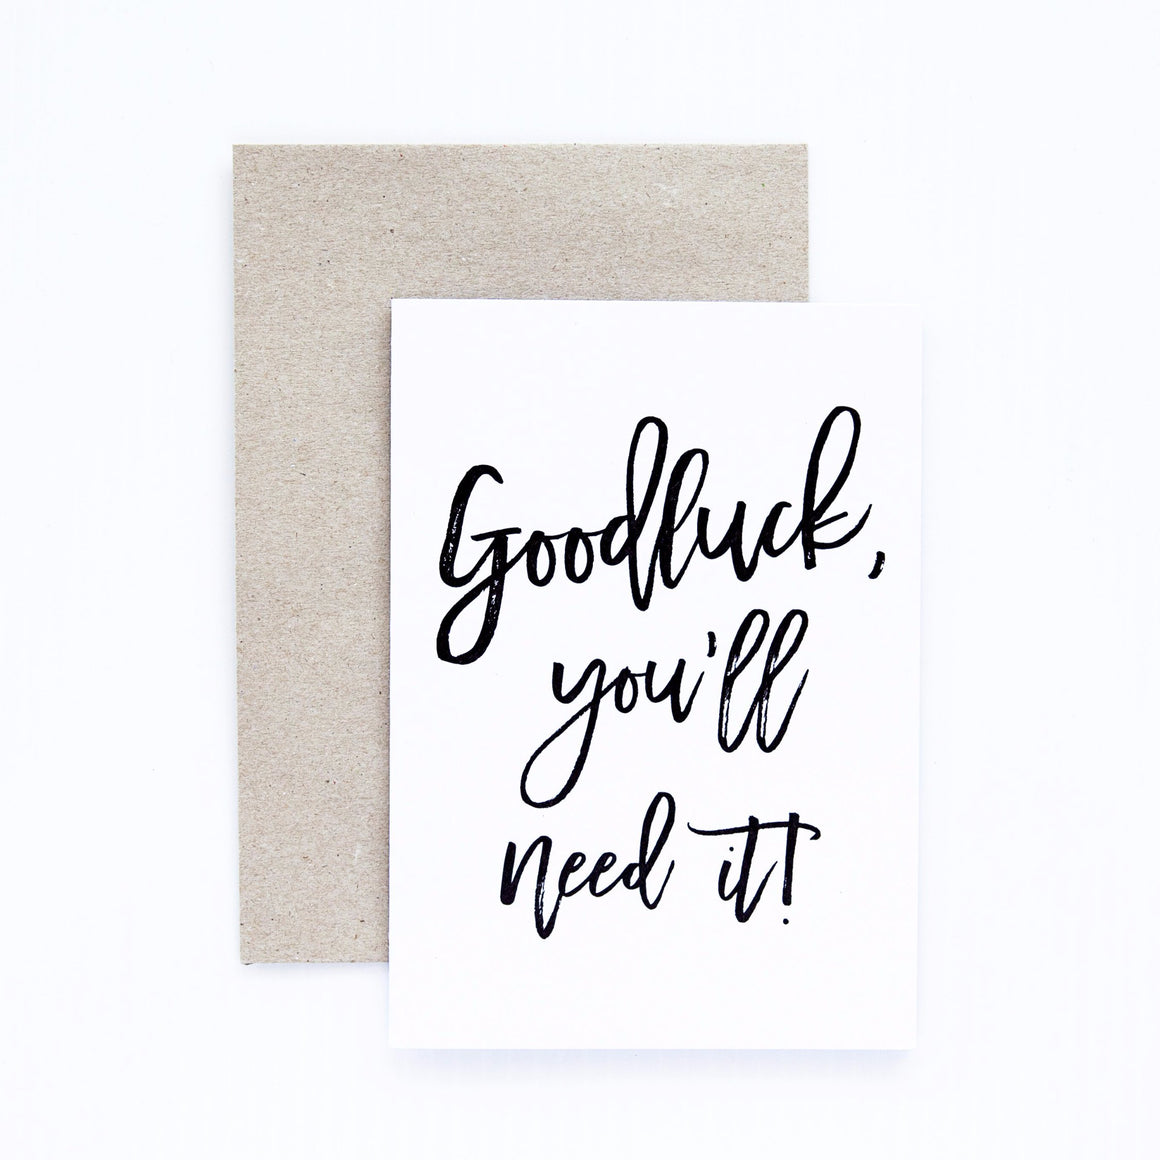 Seriously 'Good Luck You'll Need It' Greeting Card